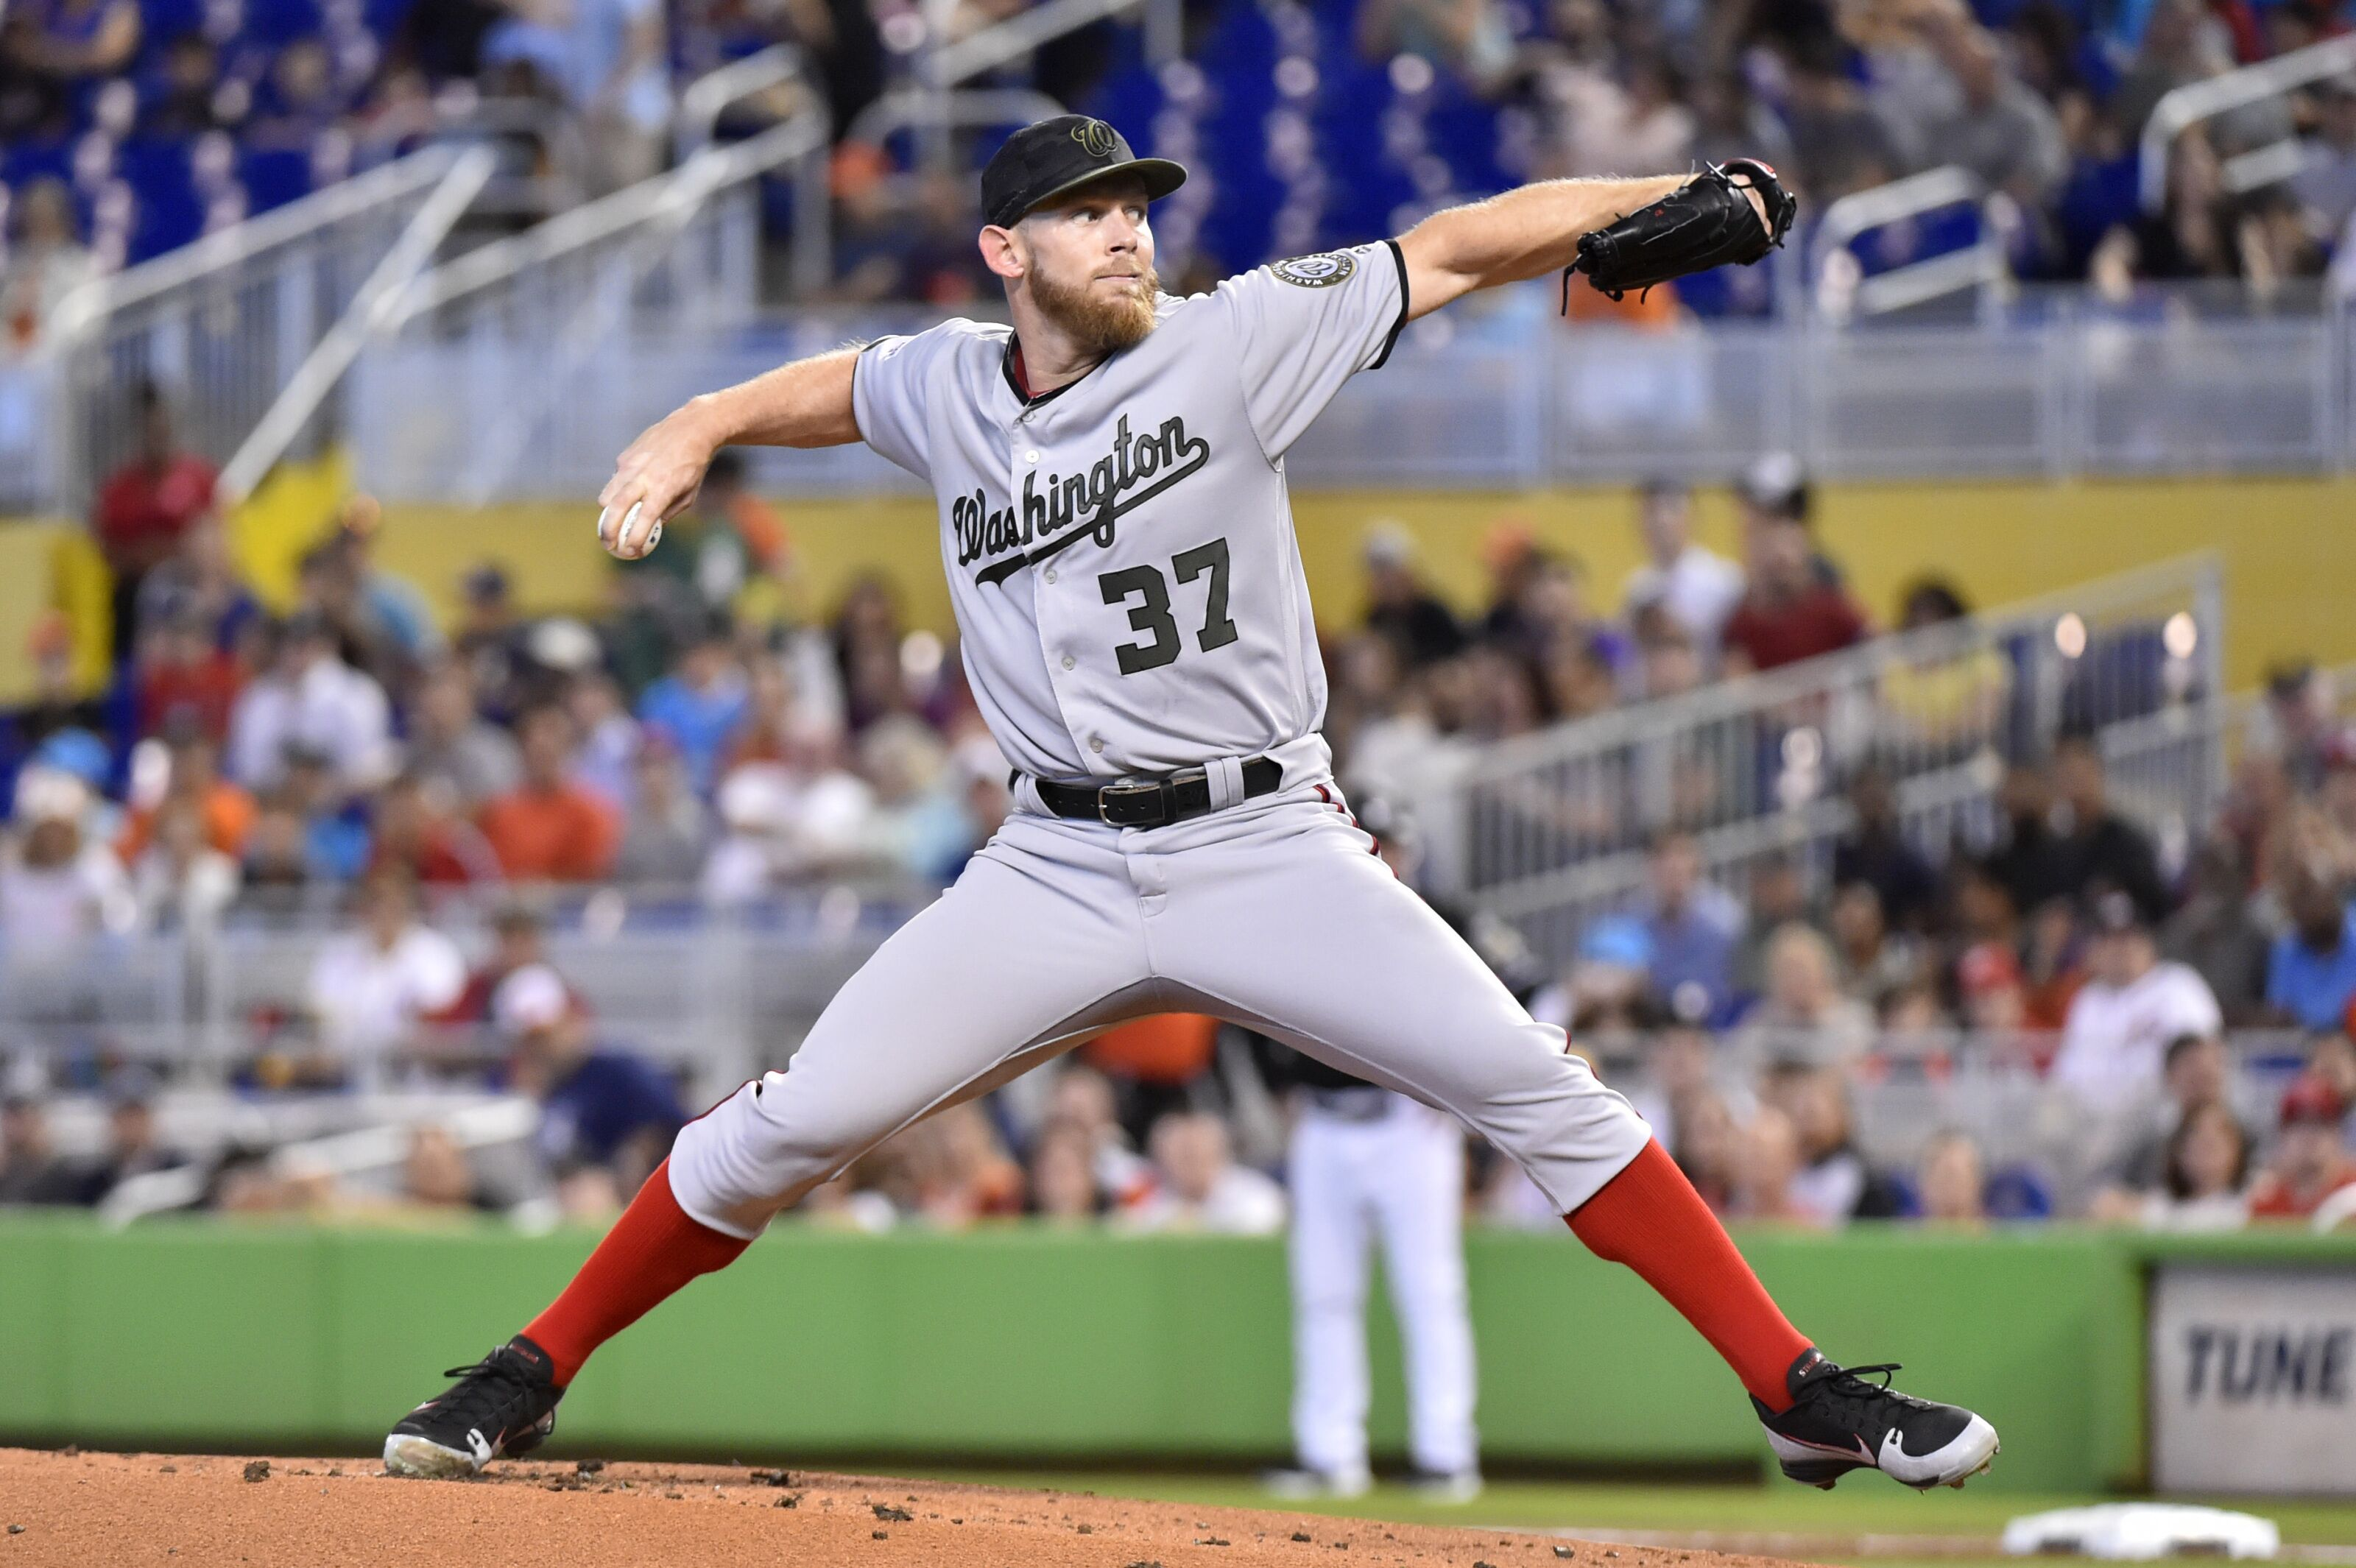 DraftKings MLB Picks June 8: Which ace should we use? - Page 2